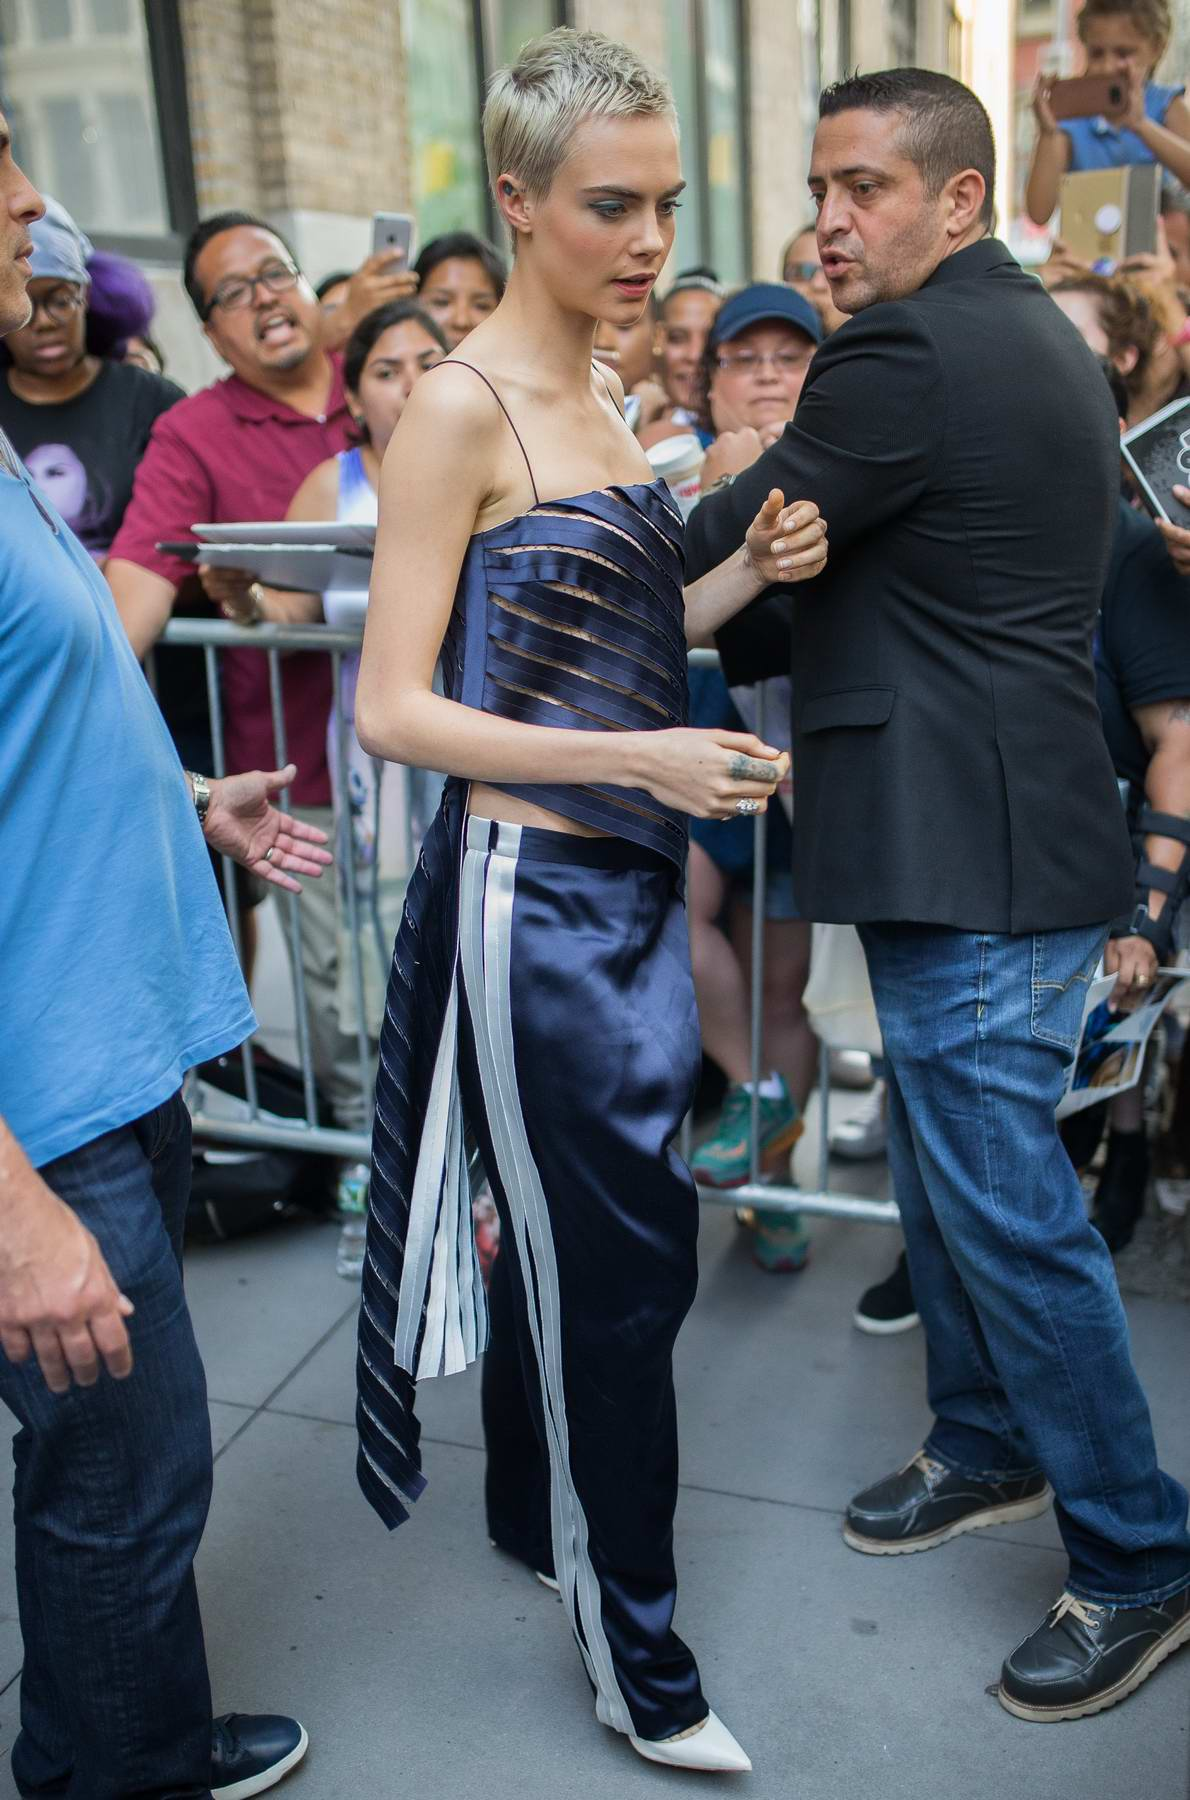 Cara Delevingne arrives the Apple Store in Soho to promote Valerian and the City of a Thousand Planets